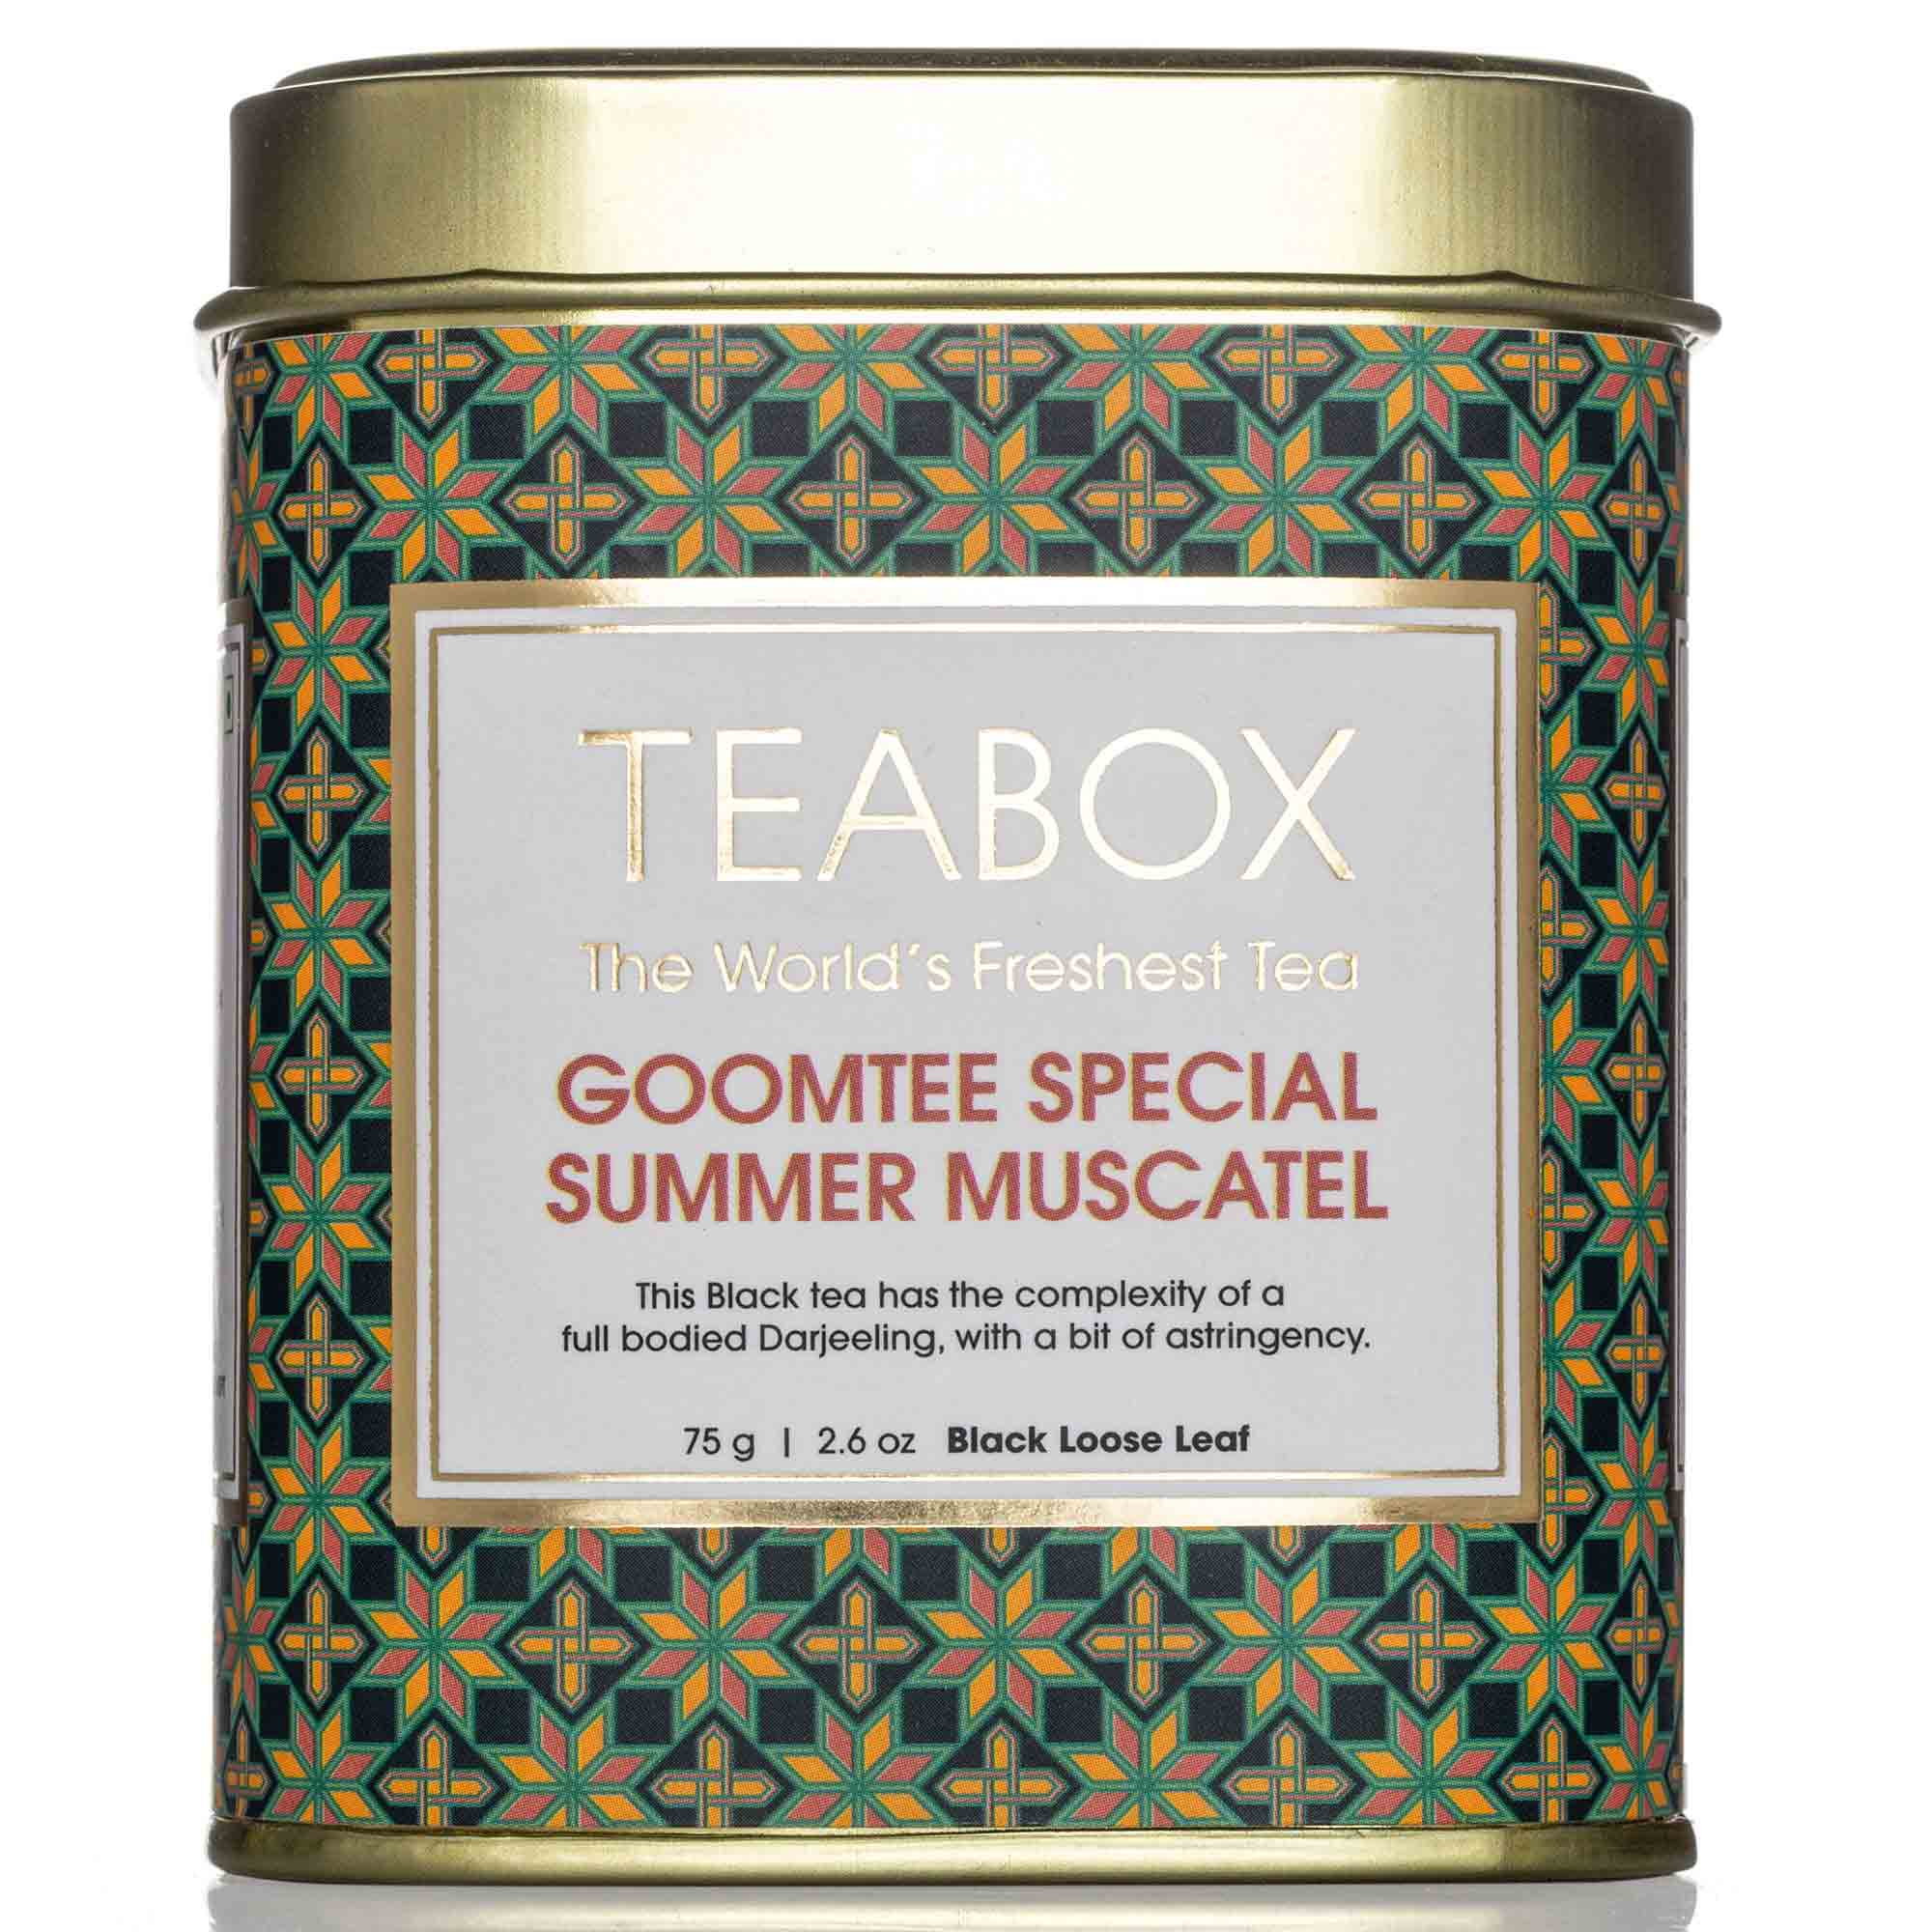 Goomtee Special Summer Muscatel Black Tea Tin